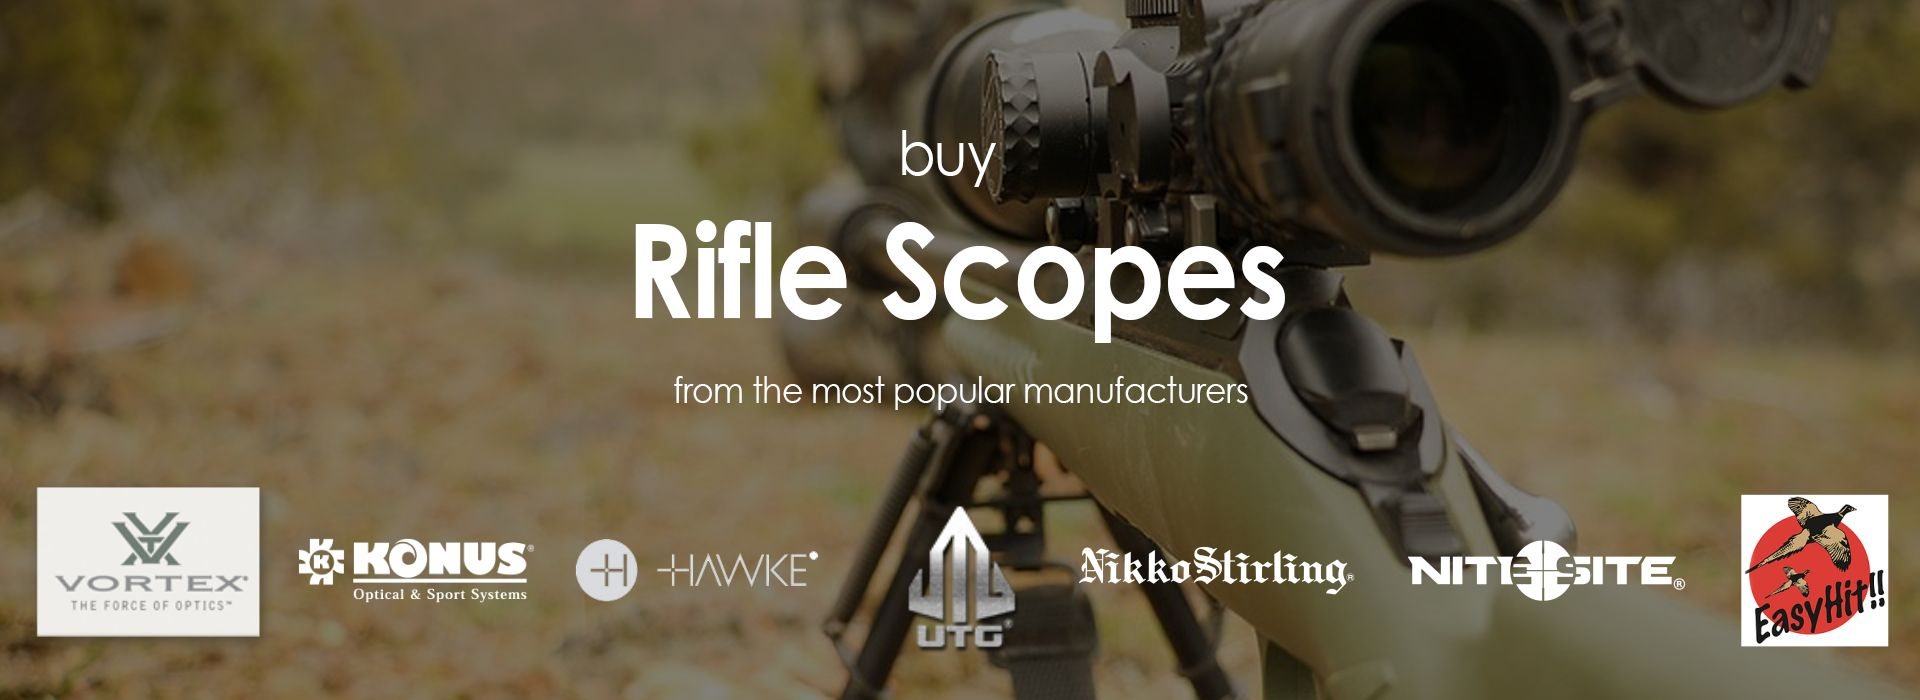 rifle scopes at tactical scope from vortex konus hawke utg nikko sterling nitesite easyhit